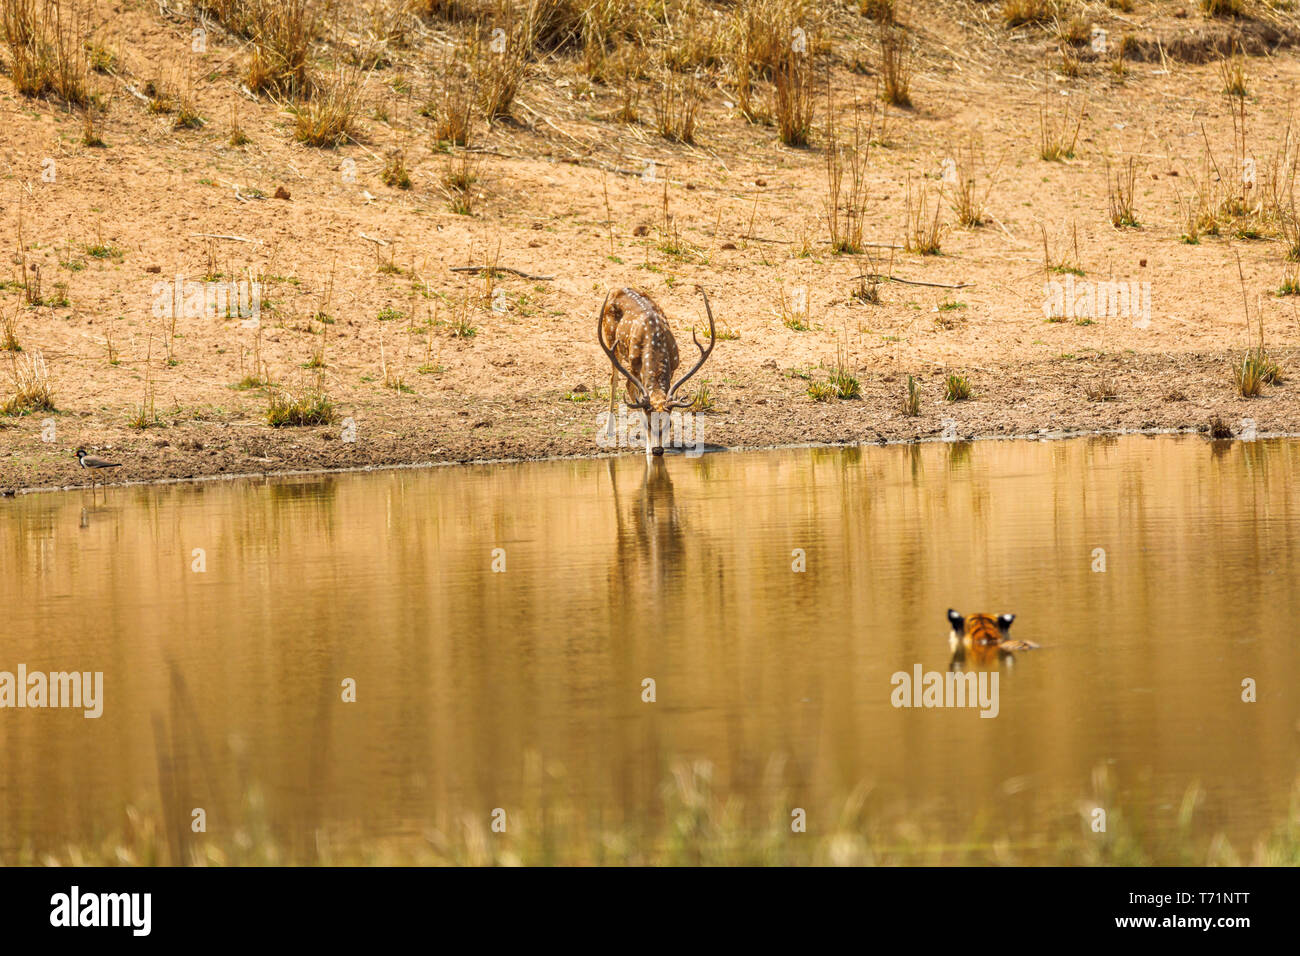 Spotted deer (Axis axis) stag drinks unaware of a nearby tiger (Bengal tiger, Panthera tigris) in the water, Bandhavgarh National Park, Madhya Pradesh - Stock Image